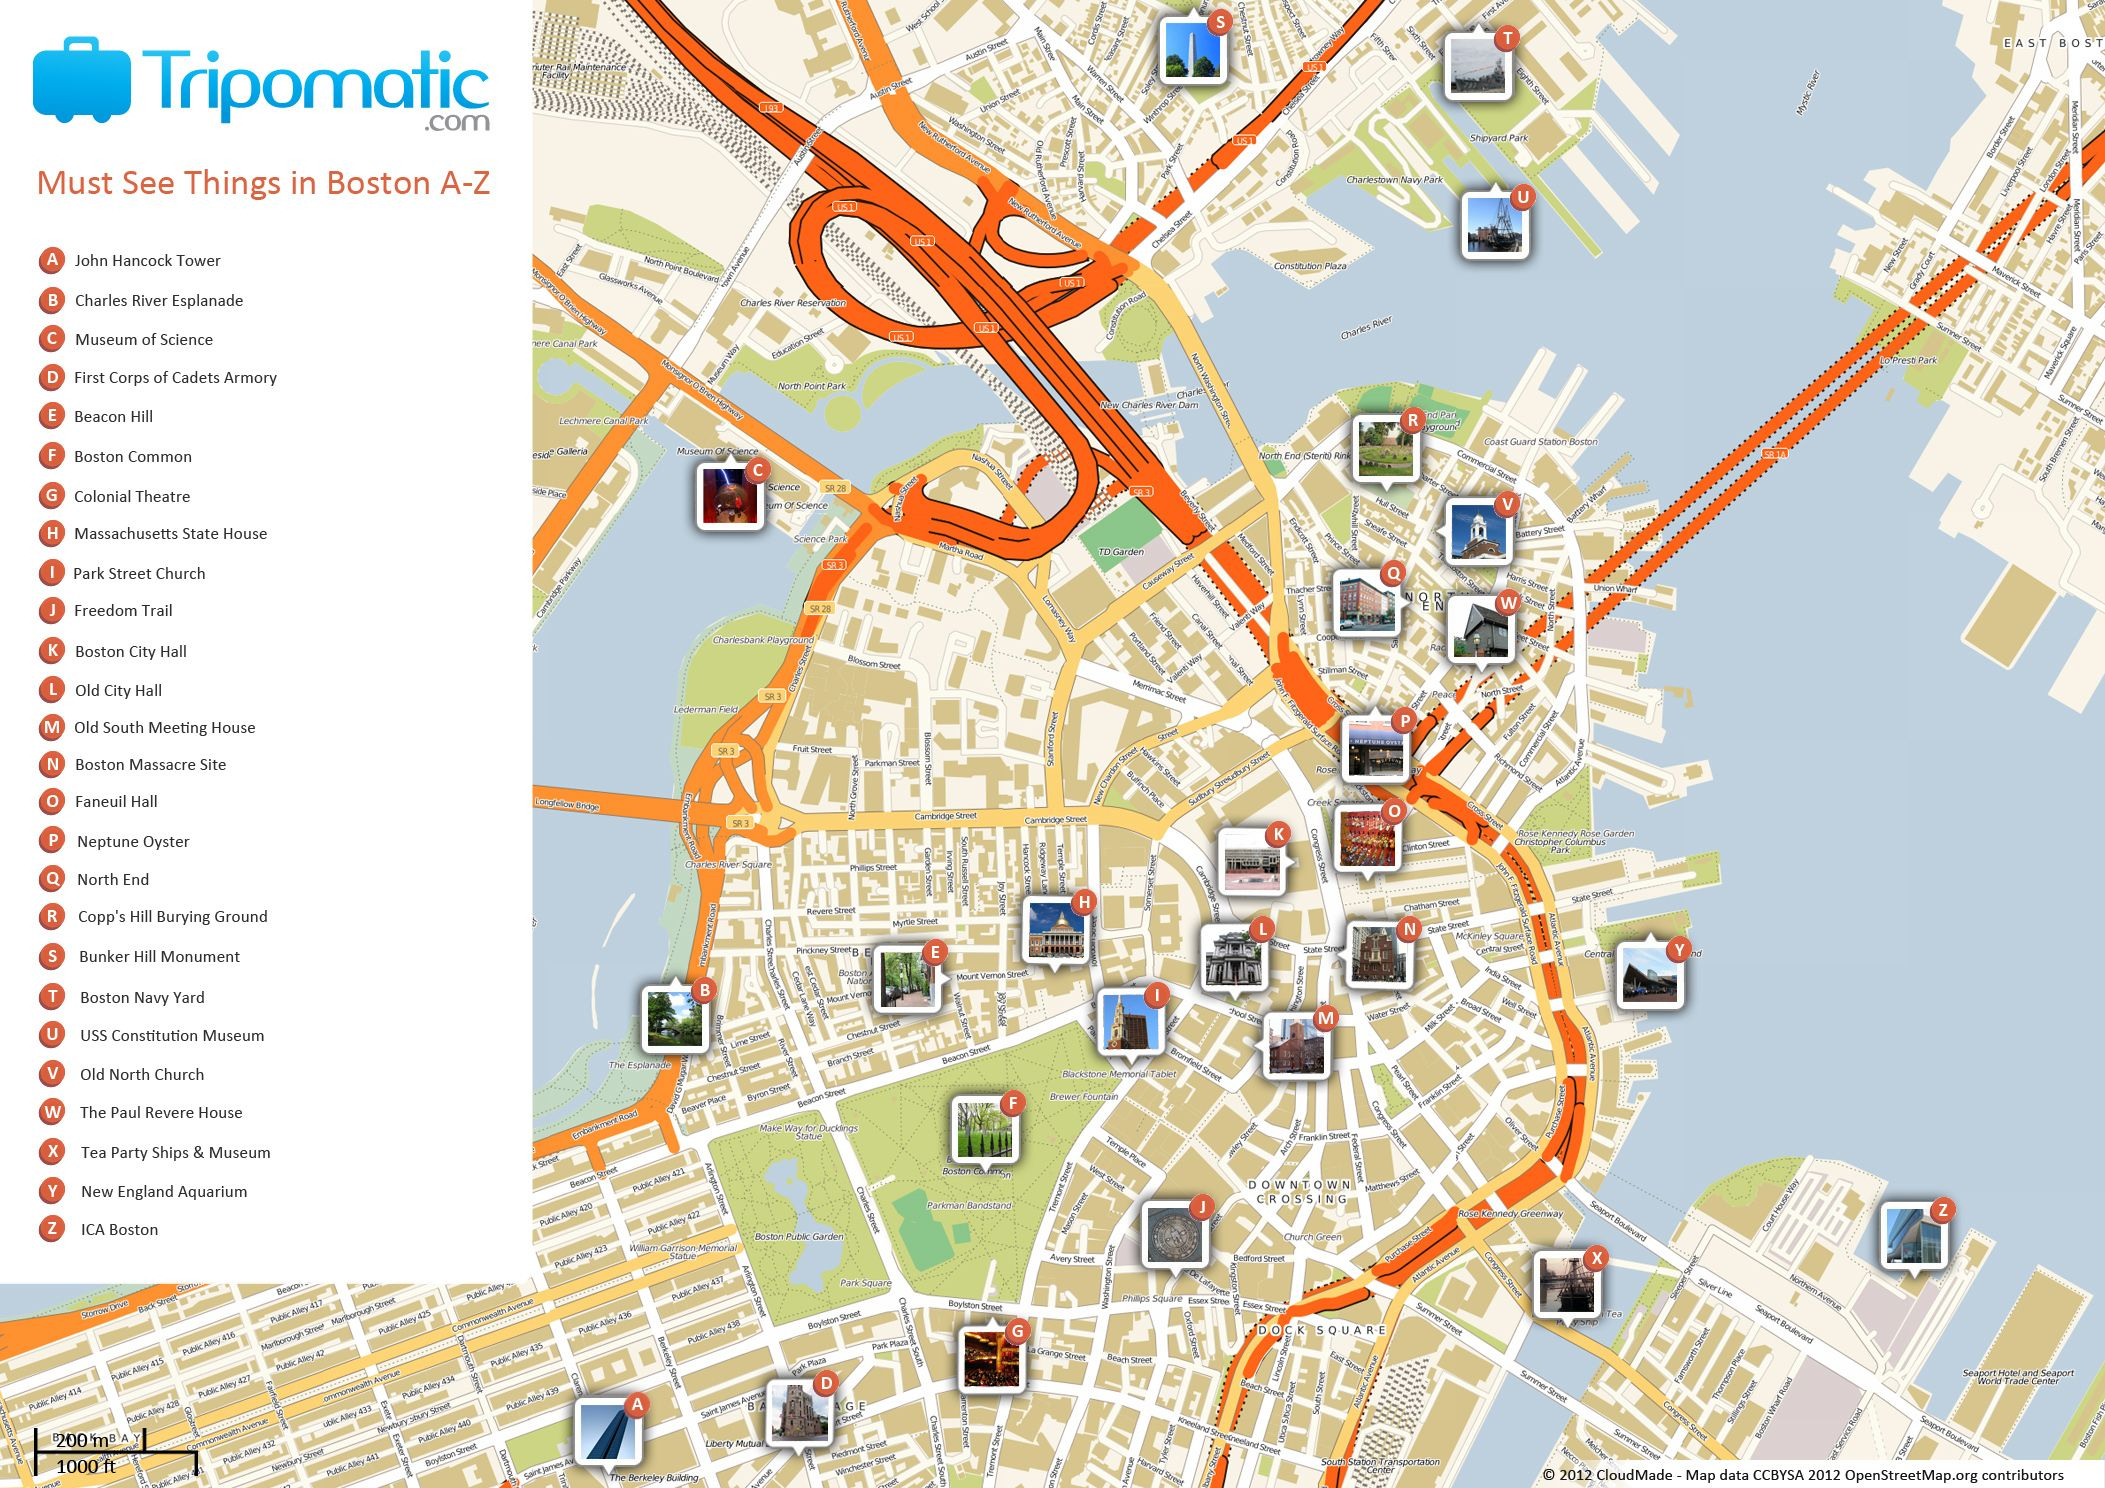 Free Printable Map Of Boston, Ma Attractions. | Free Tourist Maps - Printable Map Of Boston